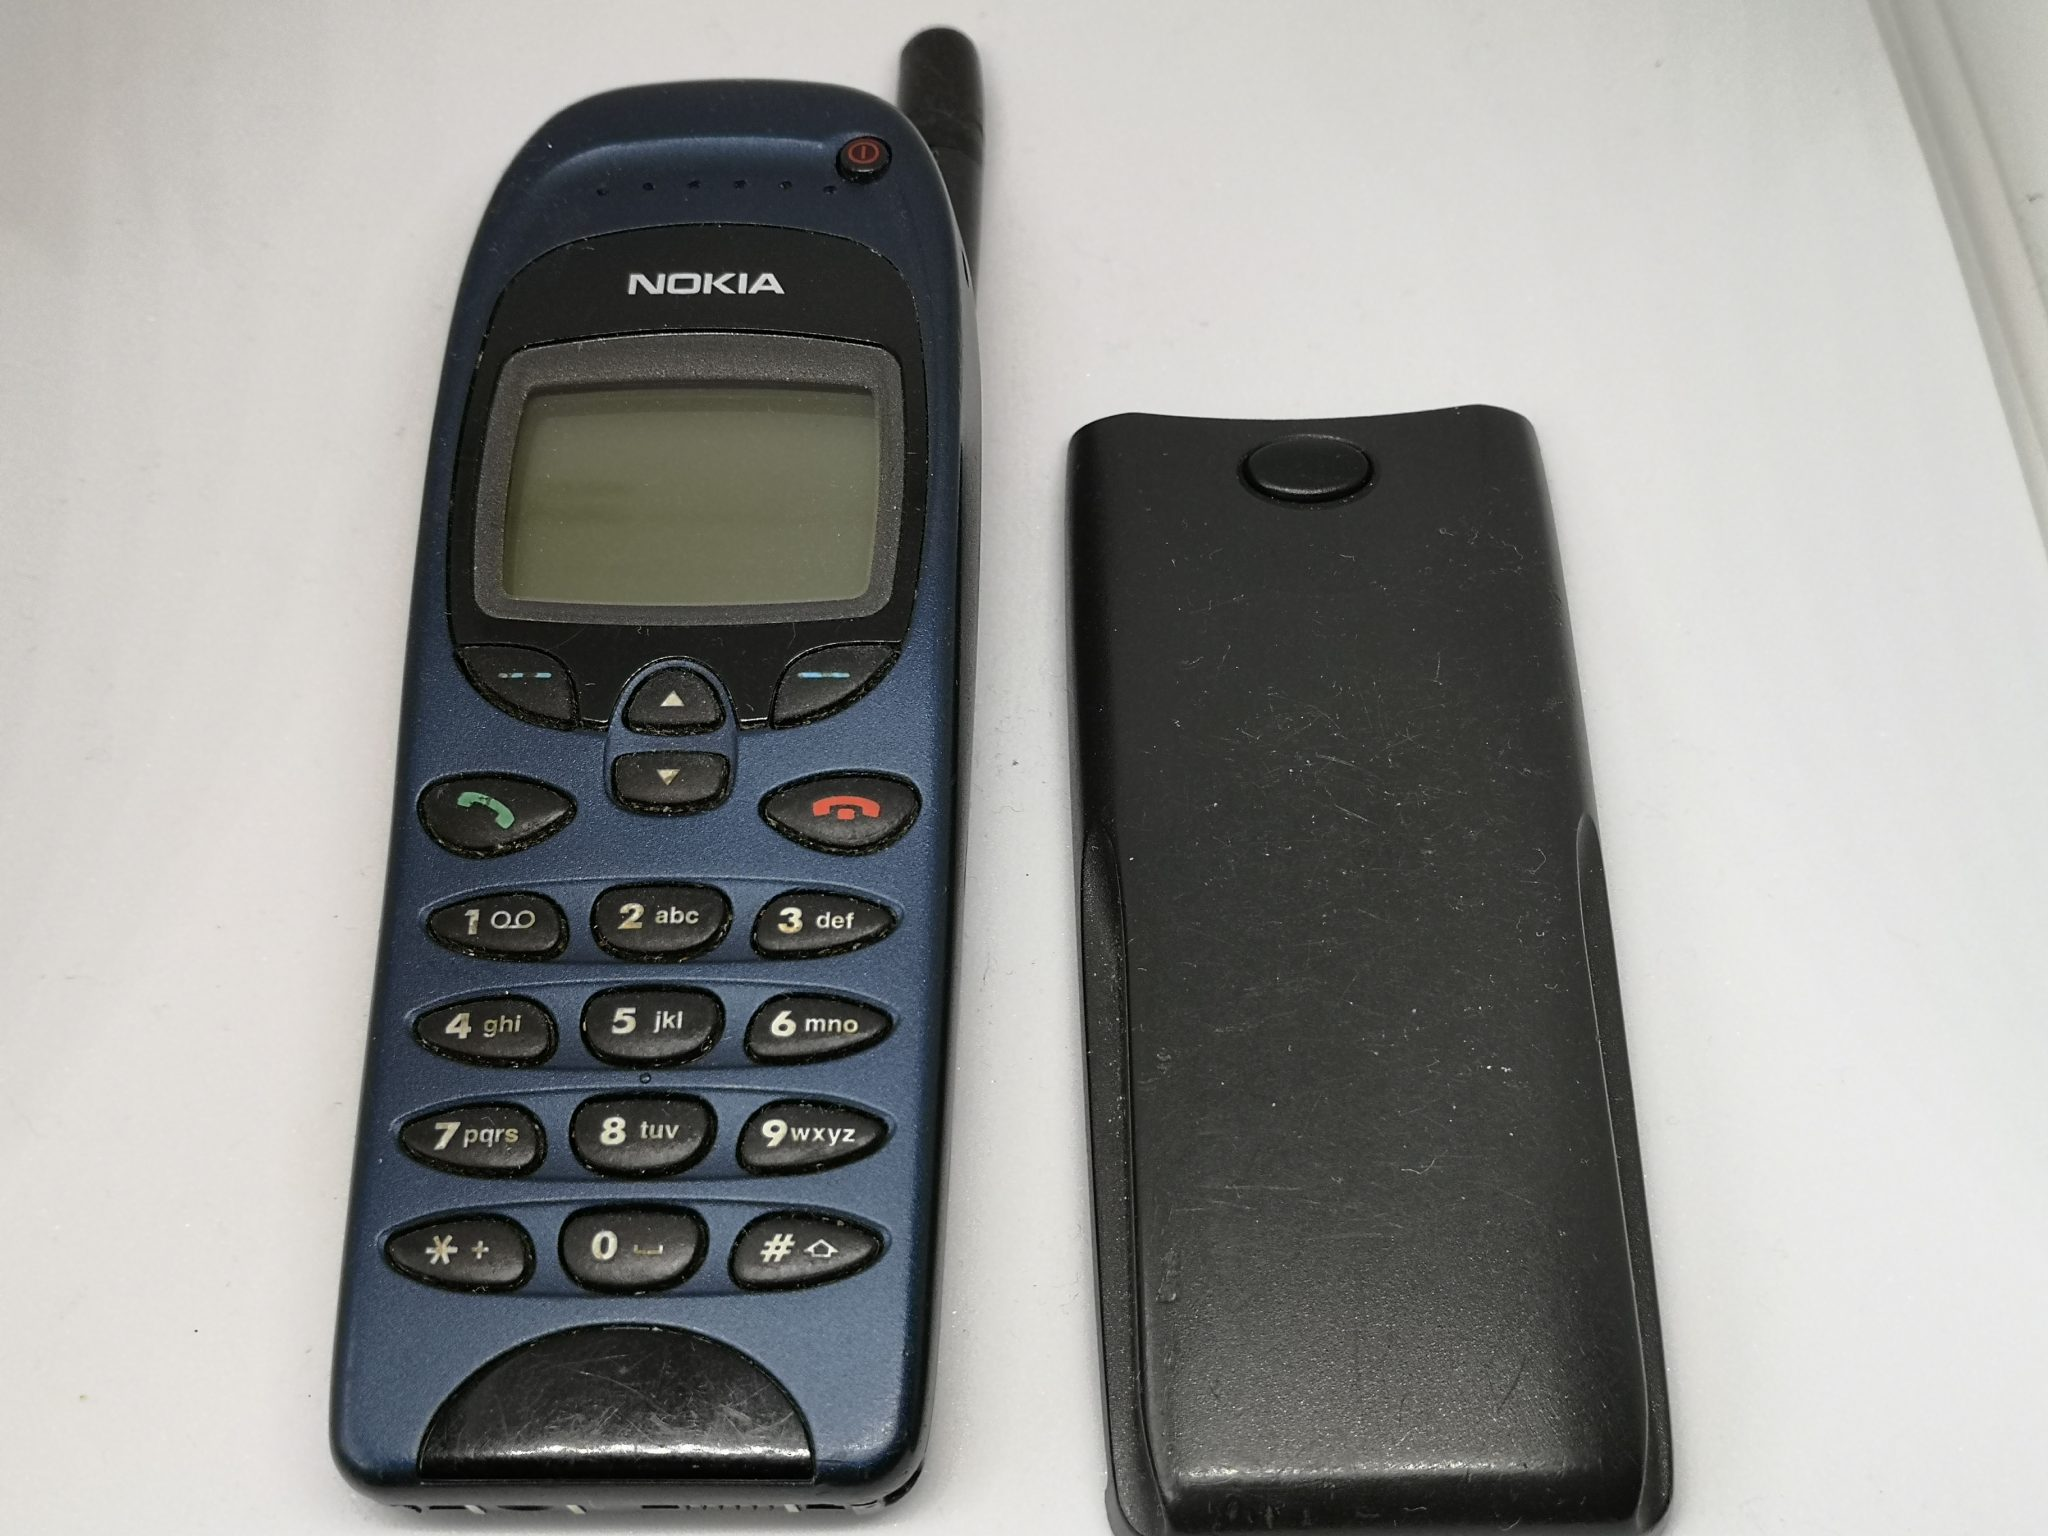 Nokia 6150 Review - A Classic Business Mobile Phone